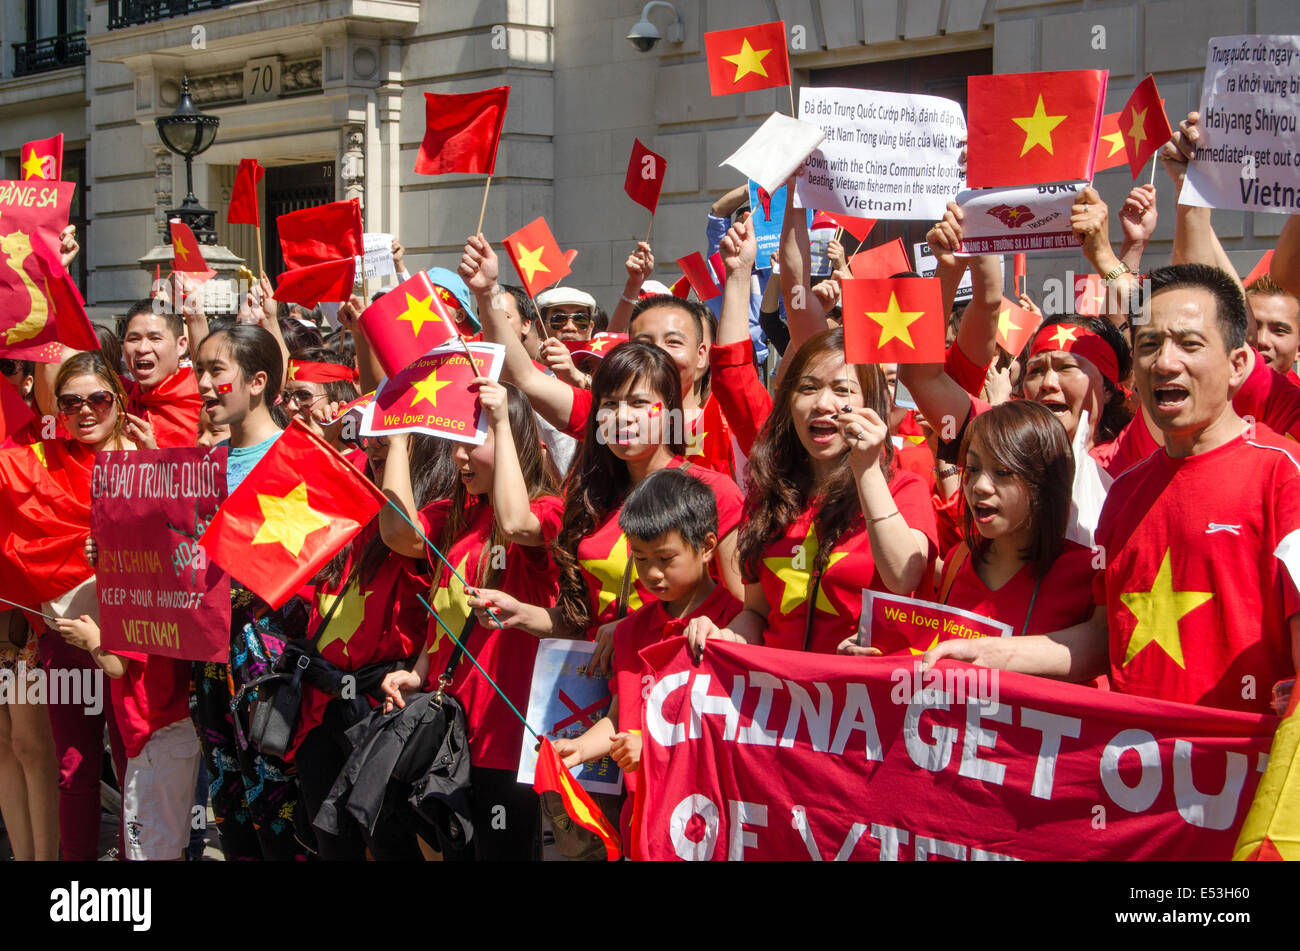 LONDON, ENGLAND  MAY 18, 2014:  Vietnamese protesters demonstrating against China moving an oil rig into disputed - Stock Image